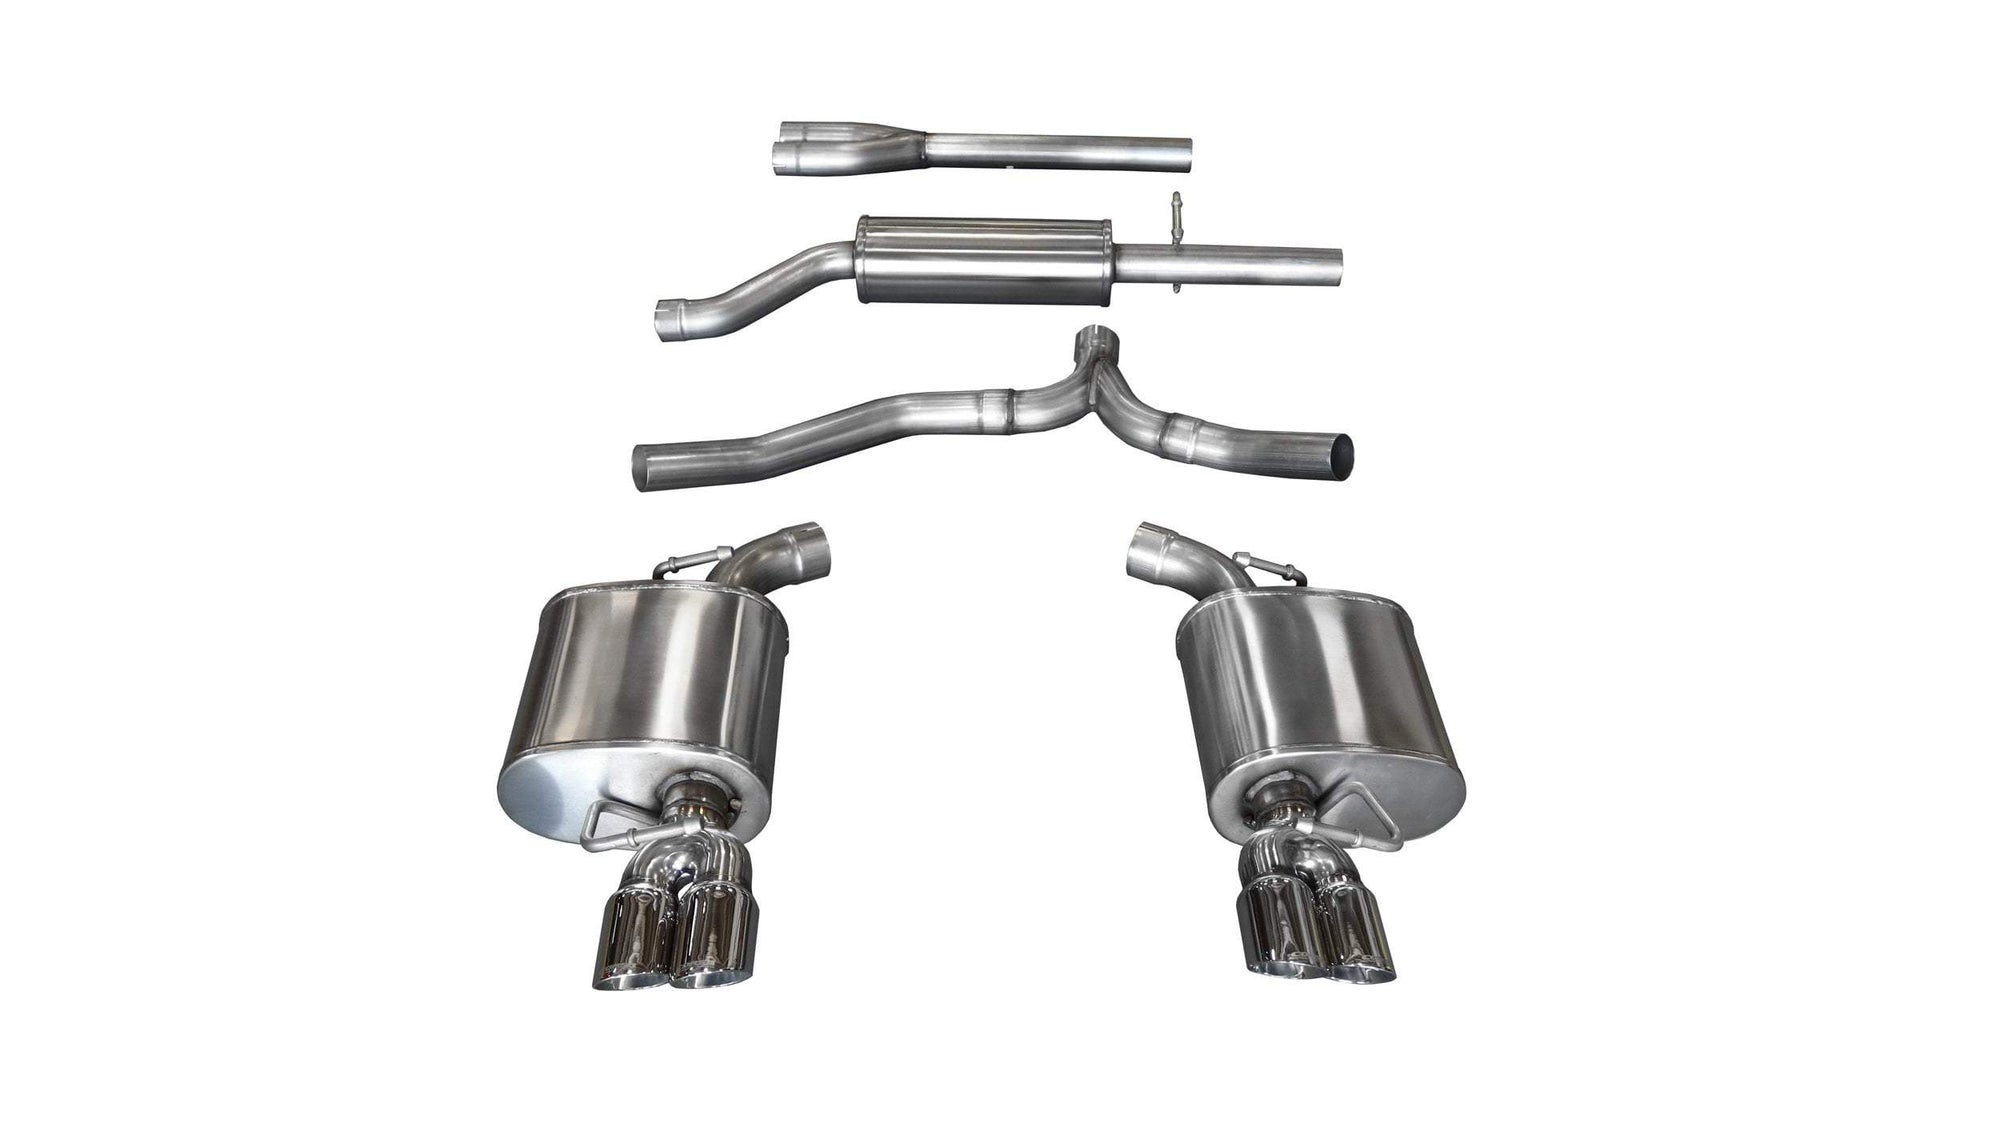 "CORSA PERFORMANCE Cat-Back Exhaust Polished / Sport / Dual Rear - Twin 3 2011-2014 Dodge Charger 3.6L V6, 2.5"" Dual Rear Exit Catback Exhaust System with Twin 3.0"" Tips (14474) Sport Sound Level"